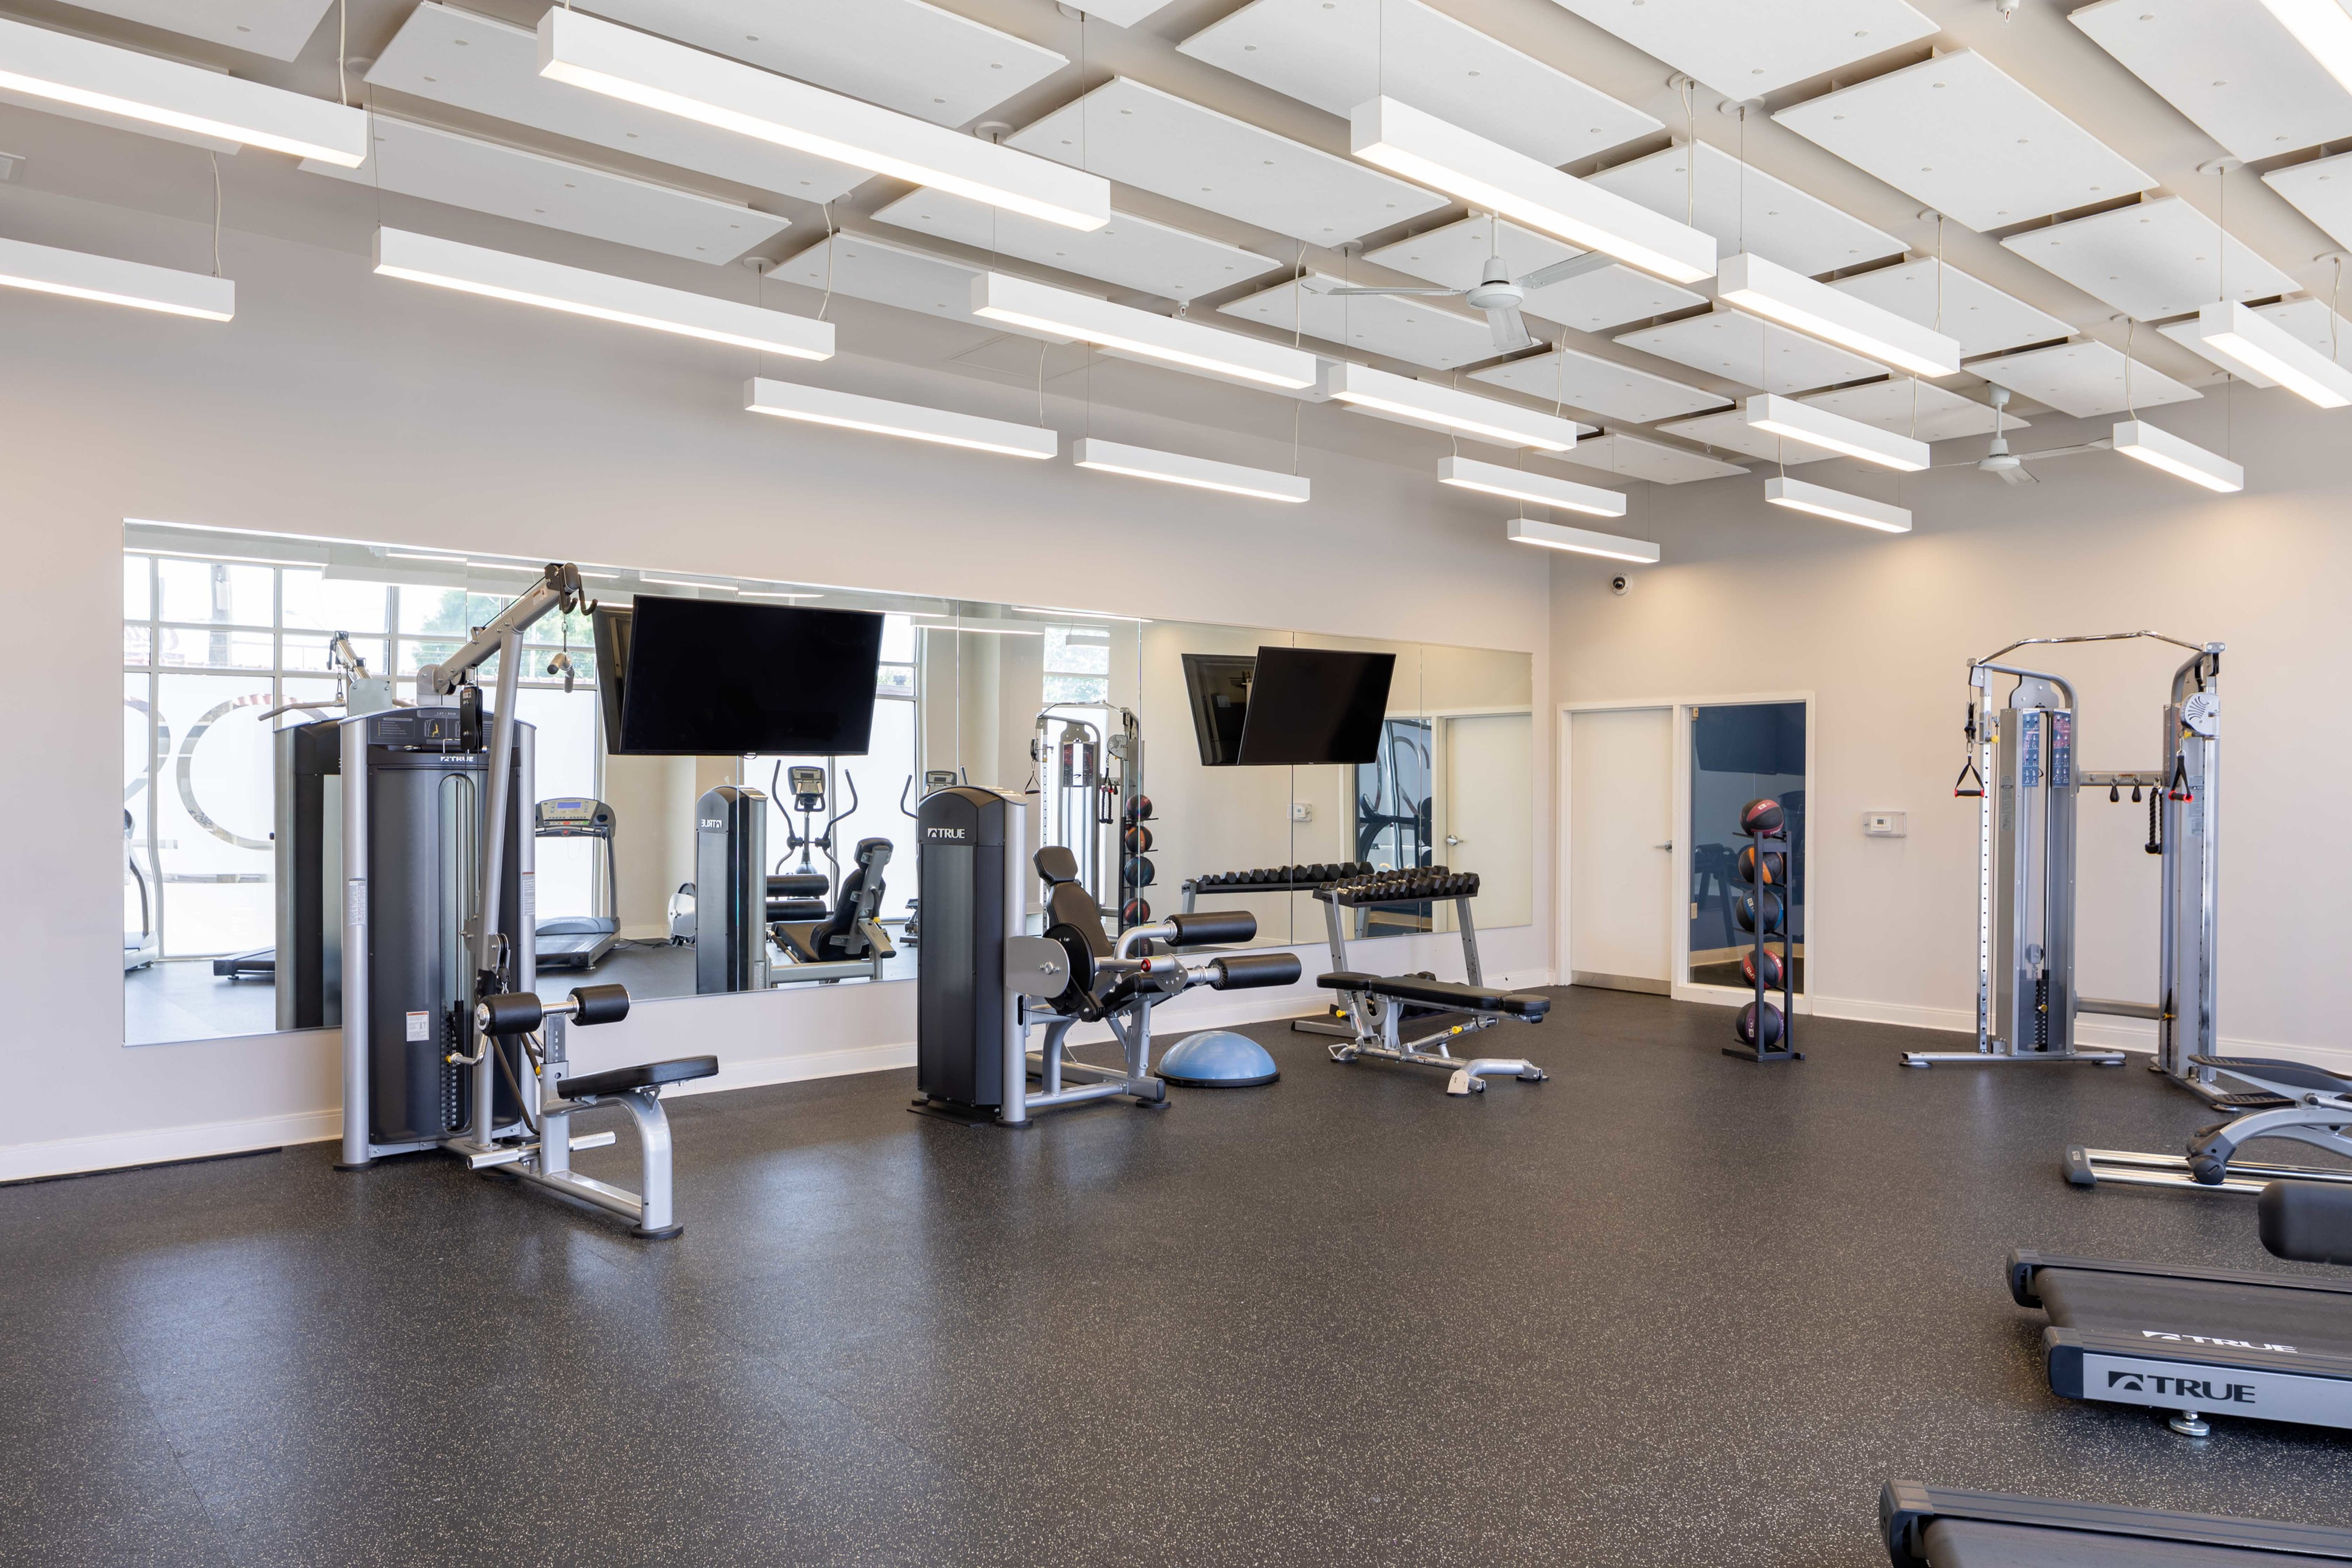 Image of 24/7 Fitness Center With Yoga Studio for 200 Edgewood